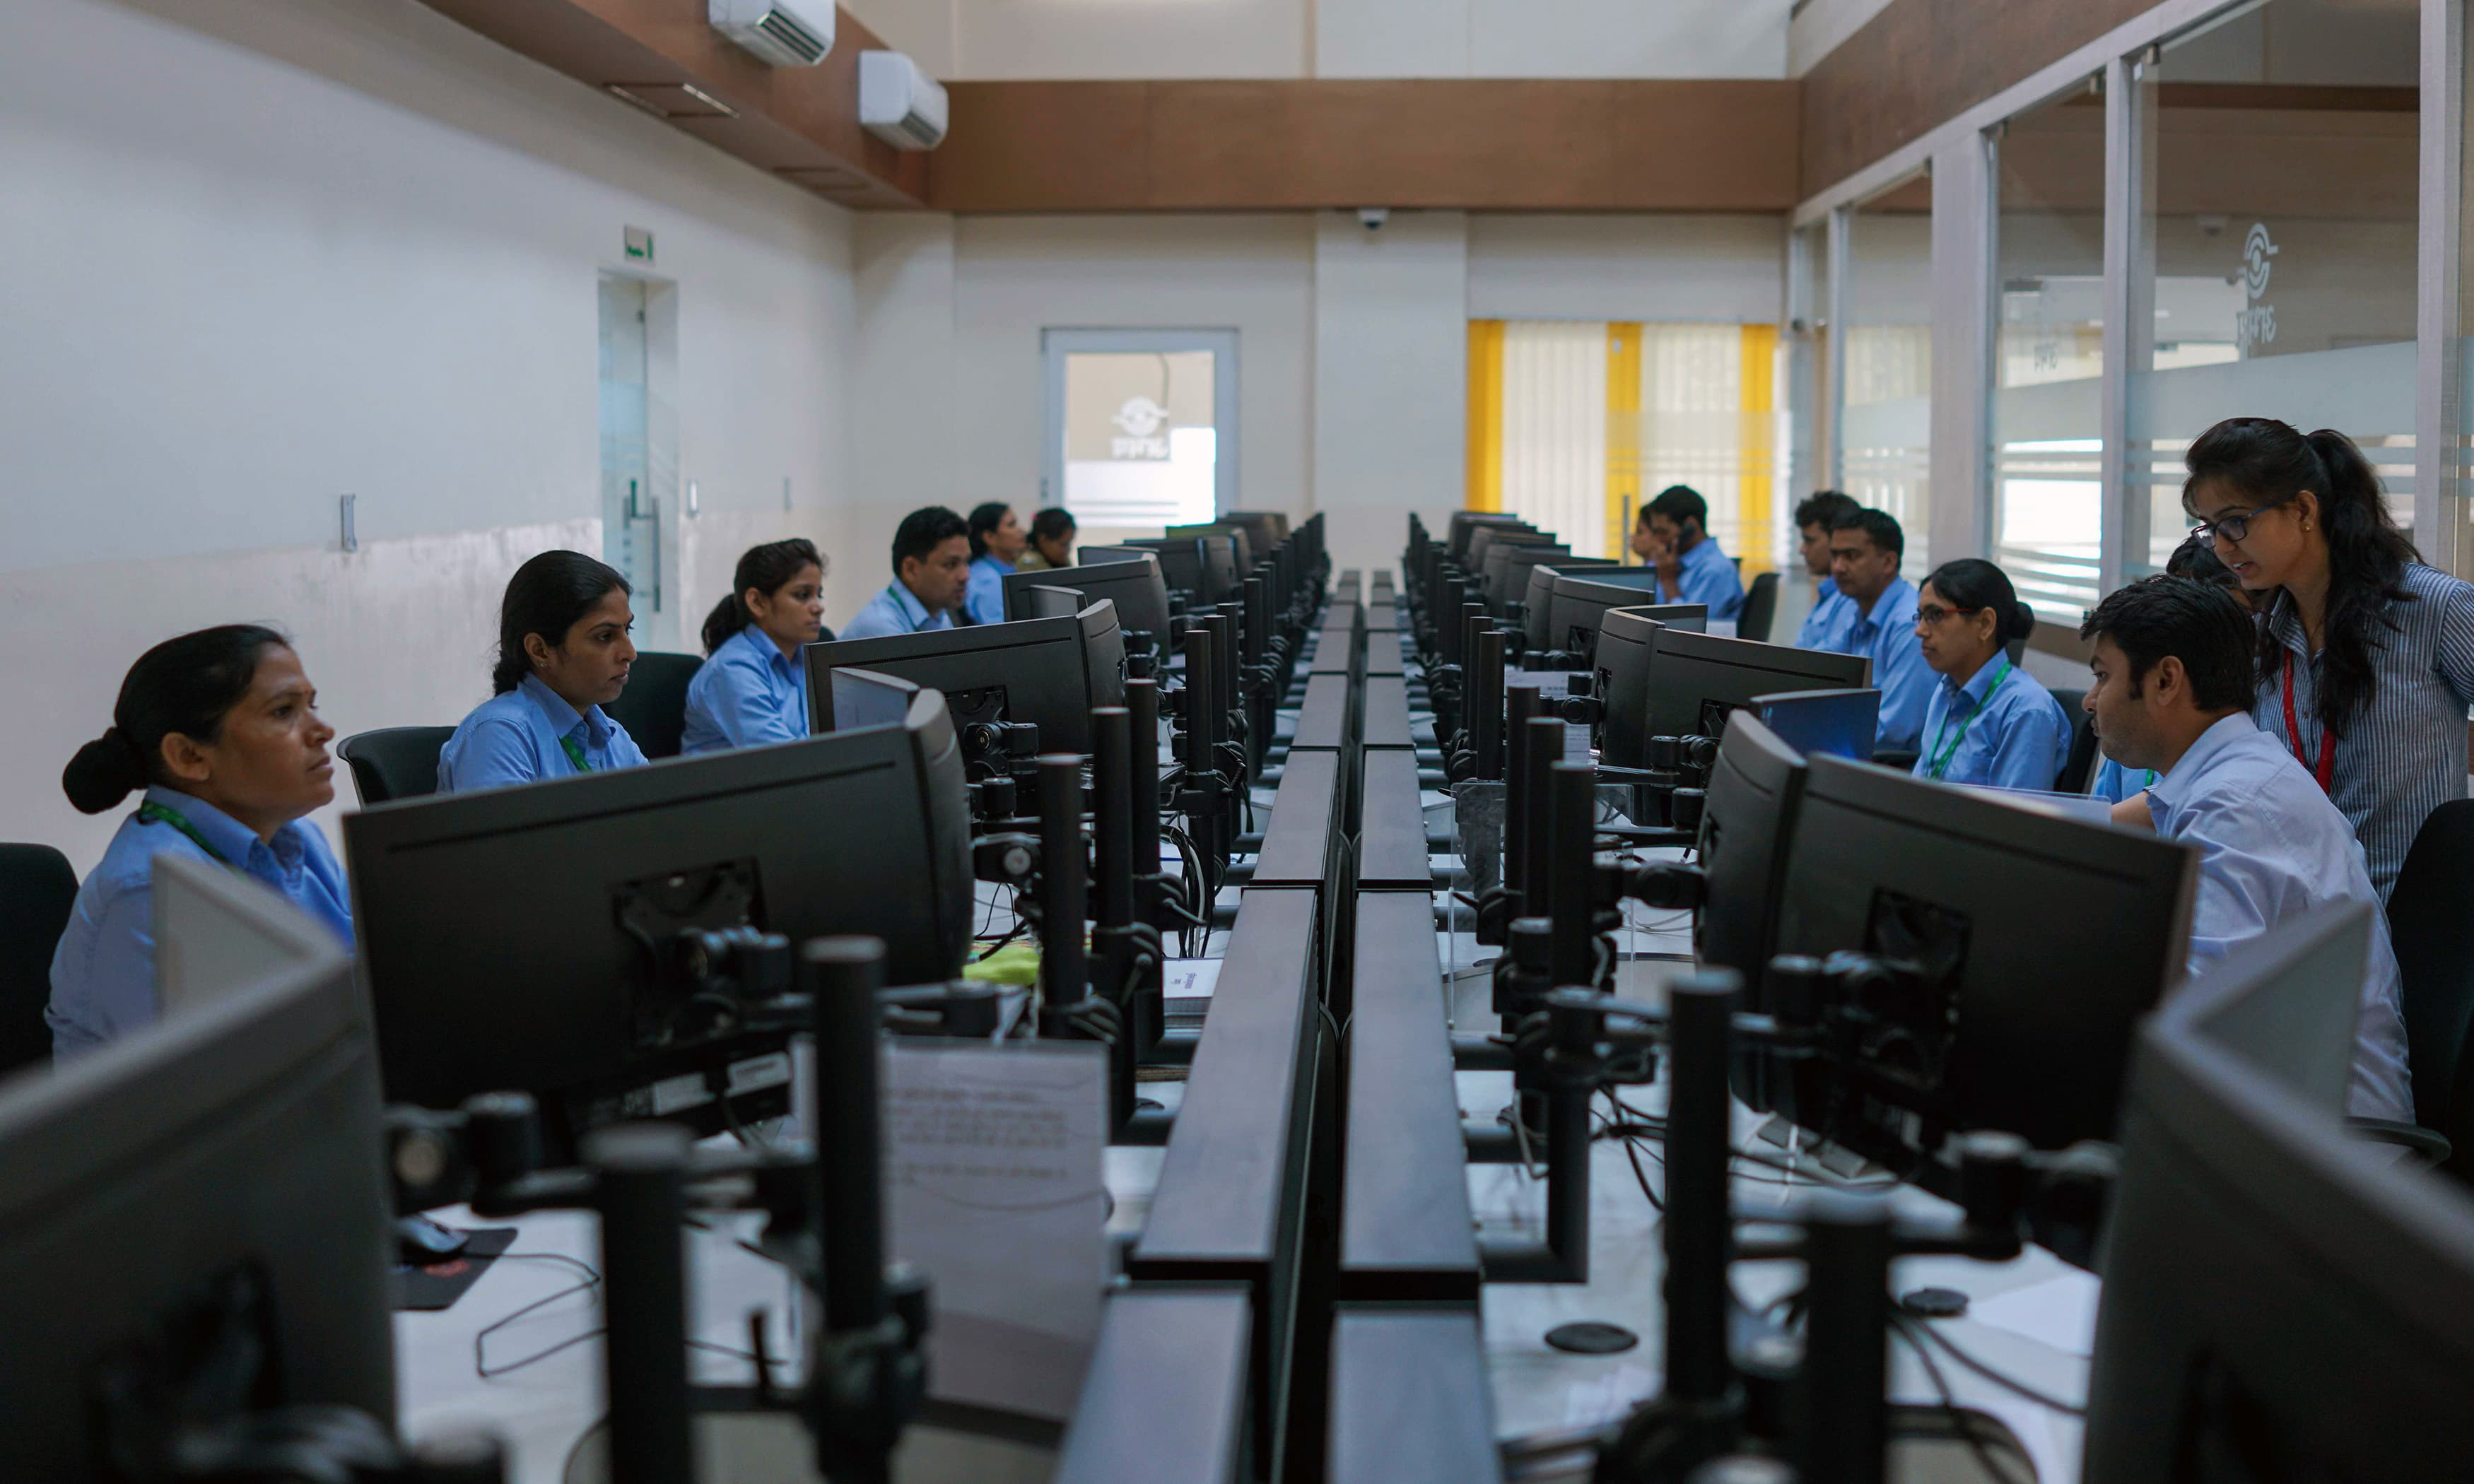 Indian police officials work inside the police command centre at Jaipur Commissionate Headquarters in Jaipur. —AFP